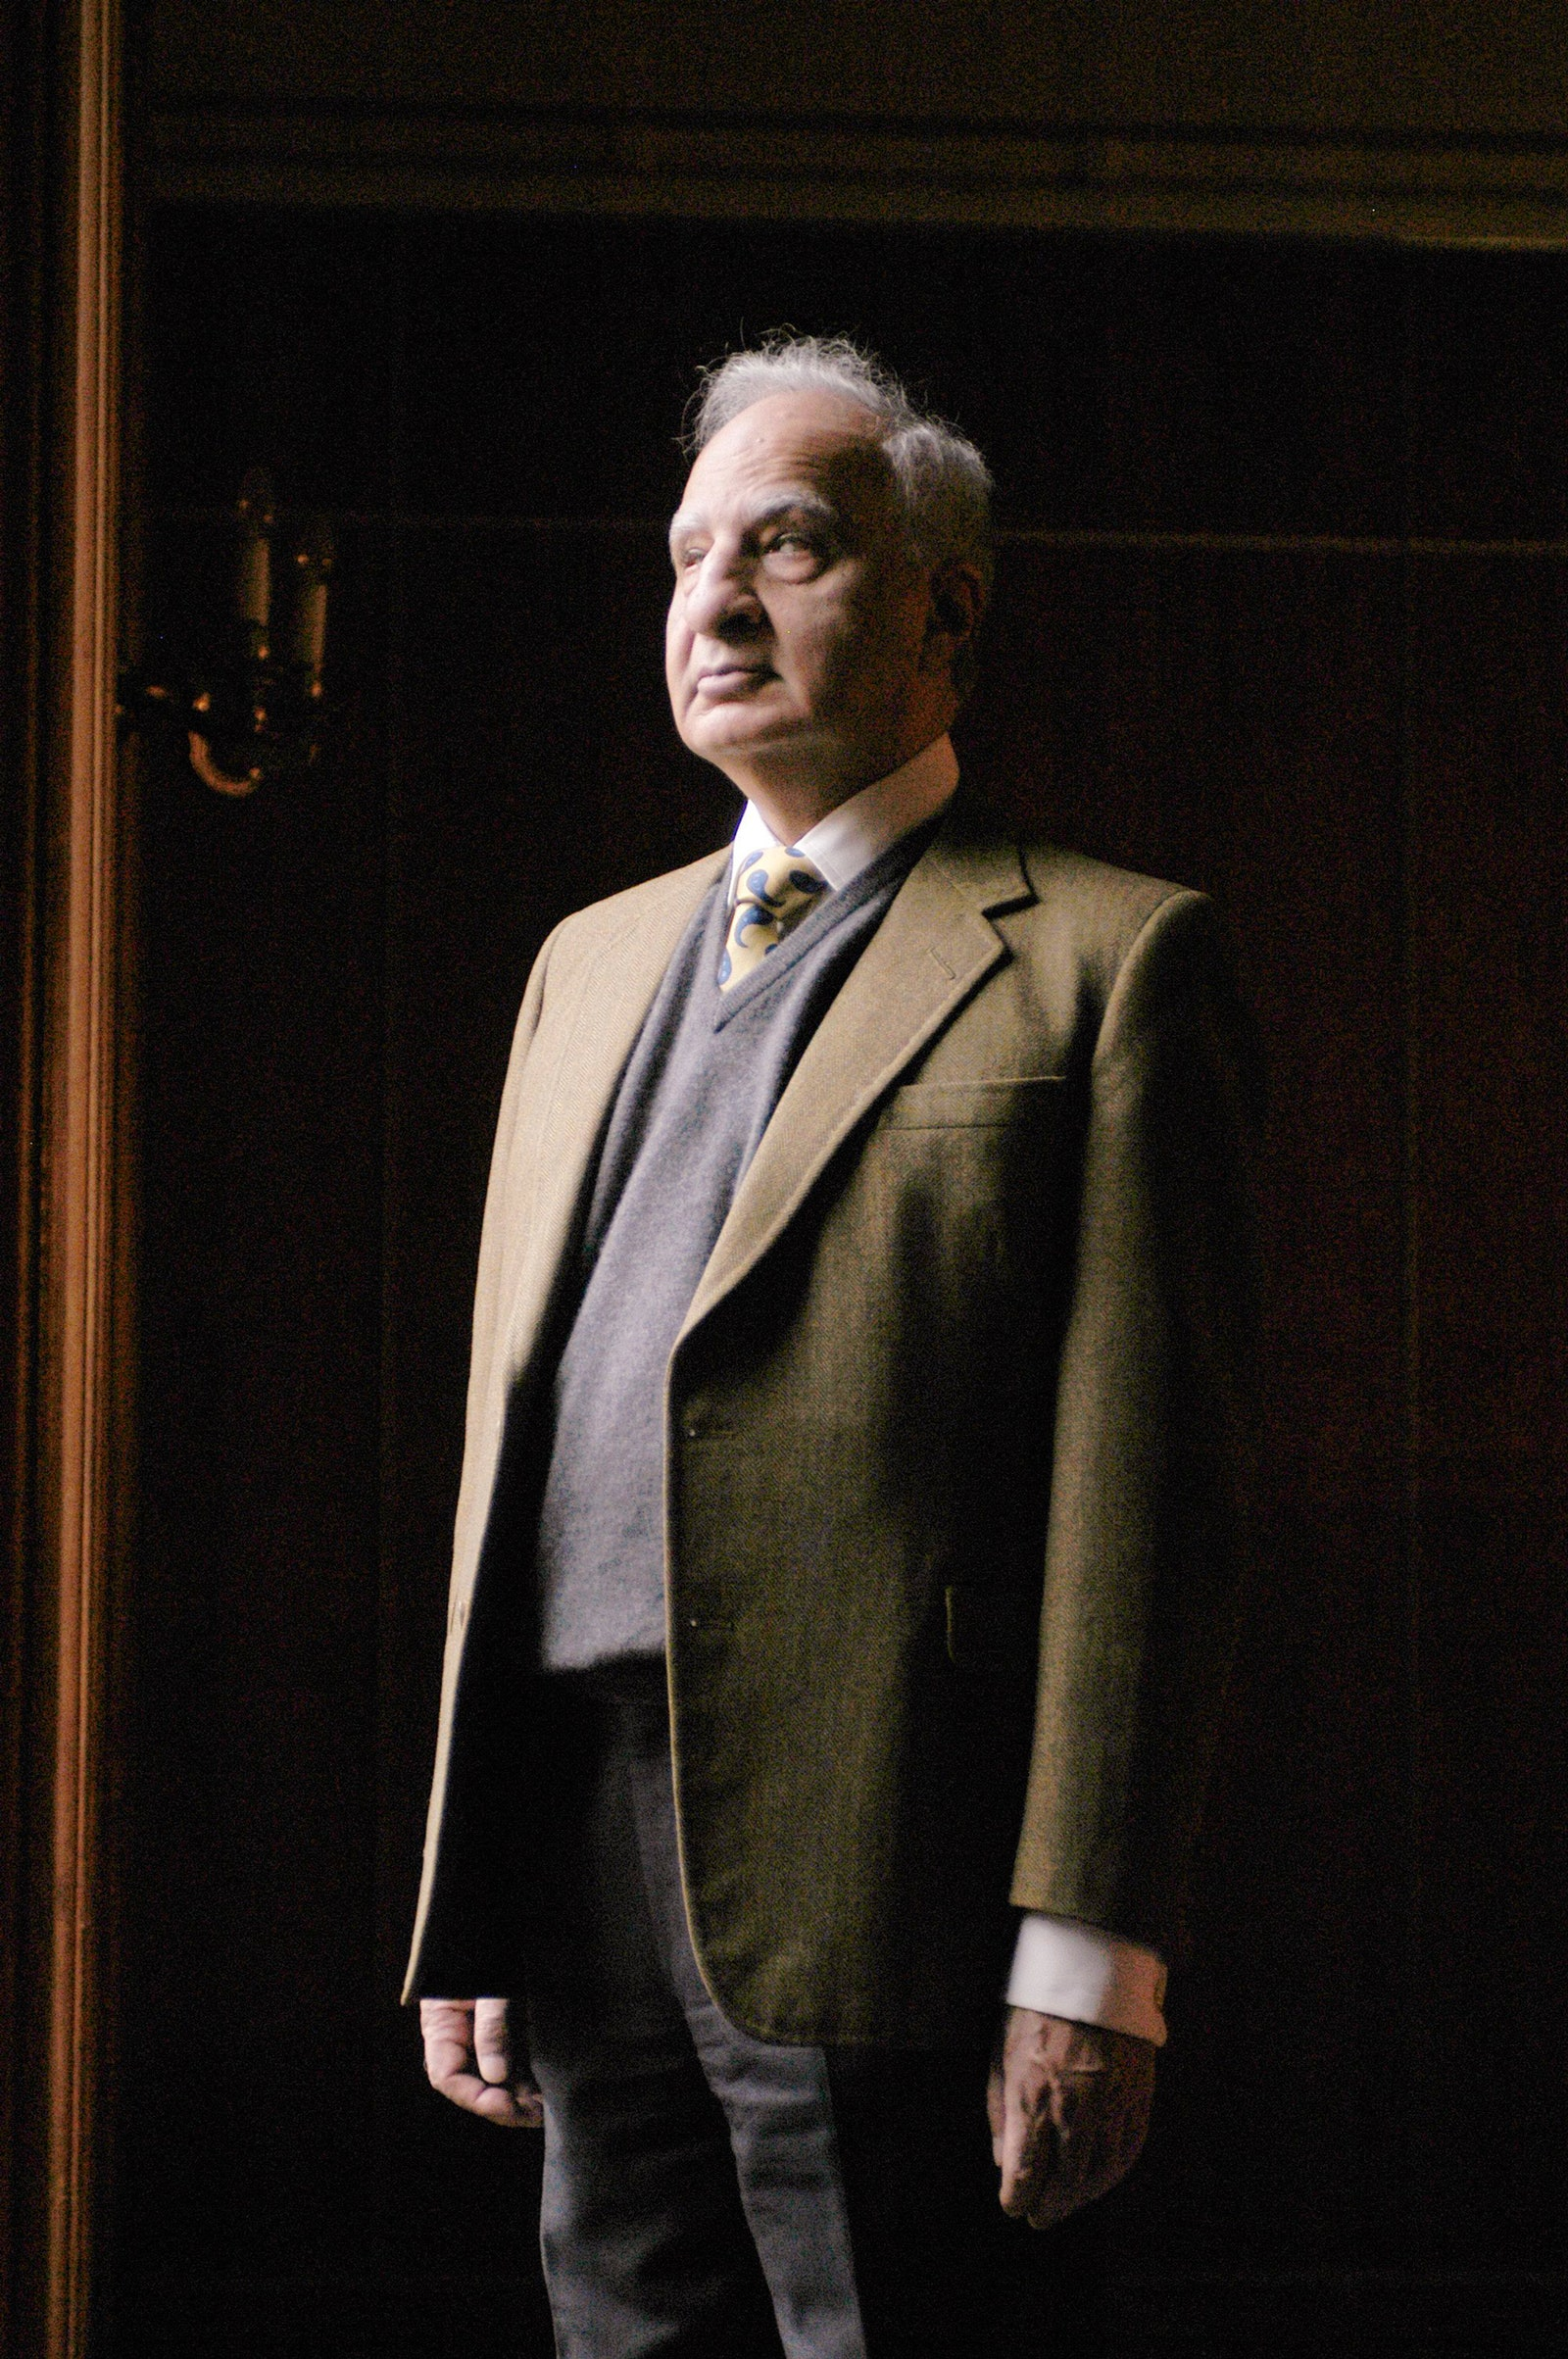 Ved Mehta standing looking off to the side in natural lighting